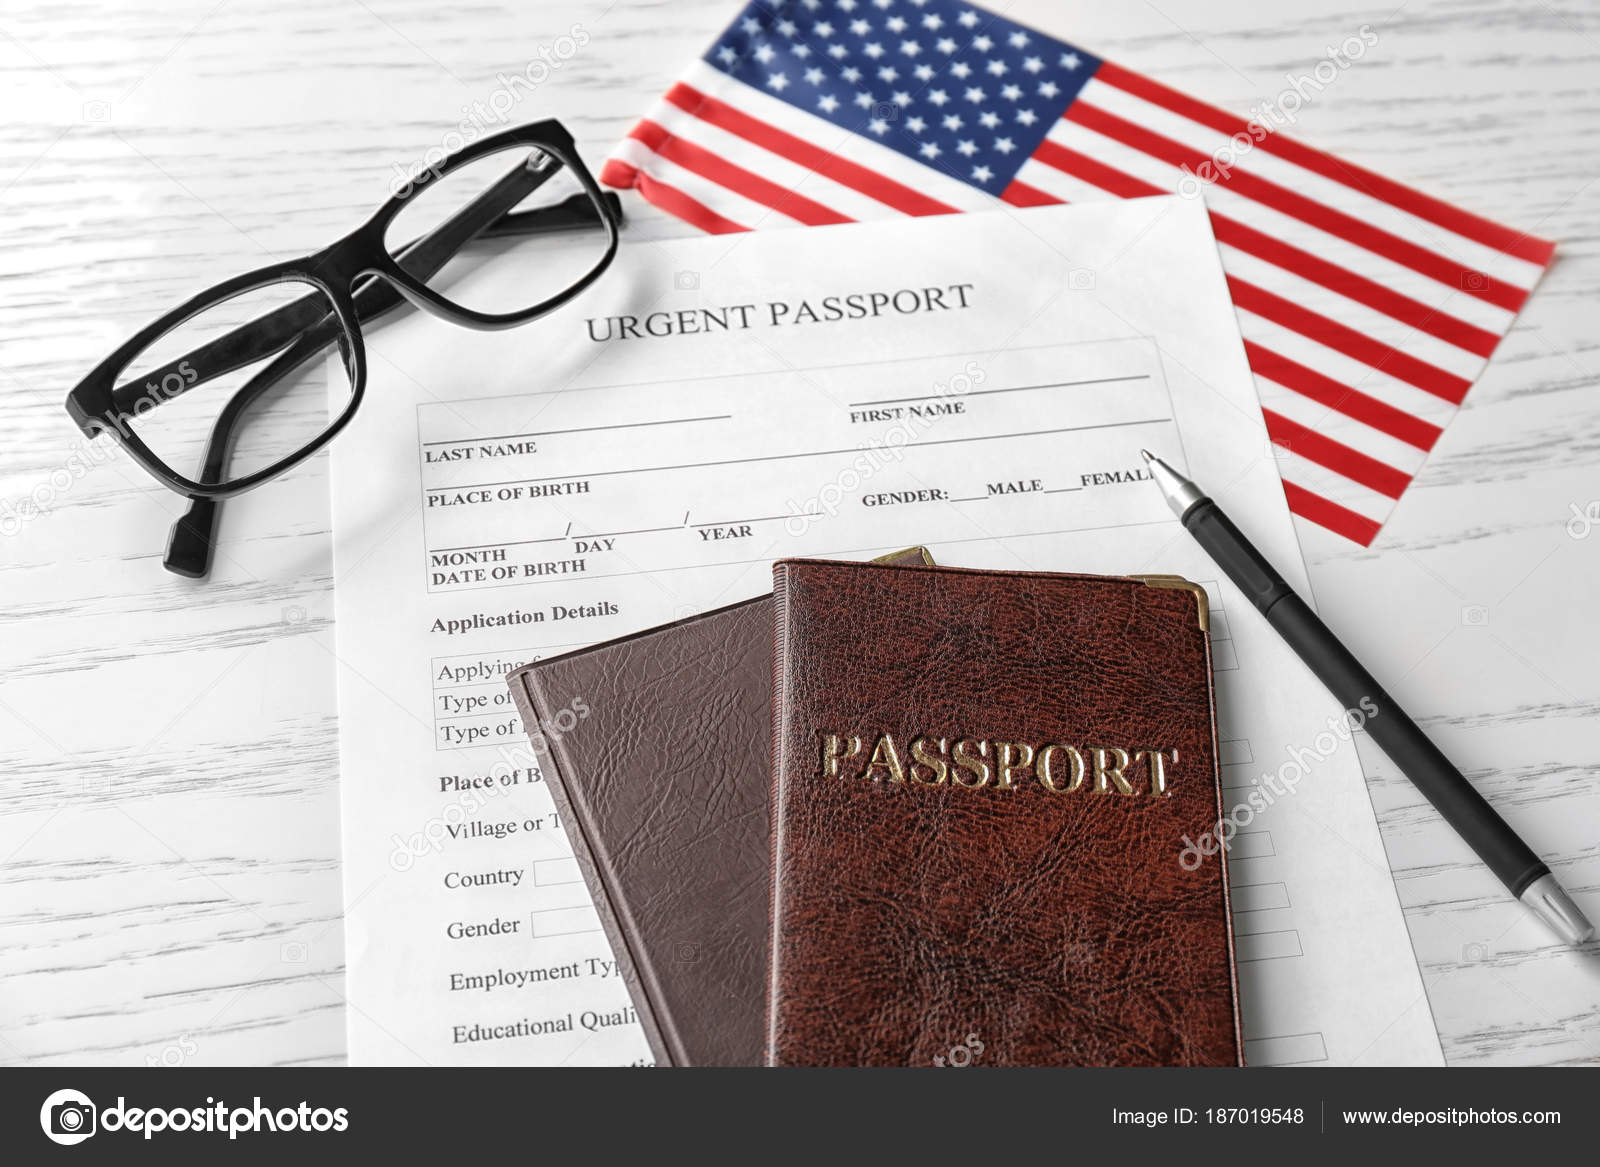 Passports Application Form And American Flag On Table Immigration